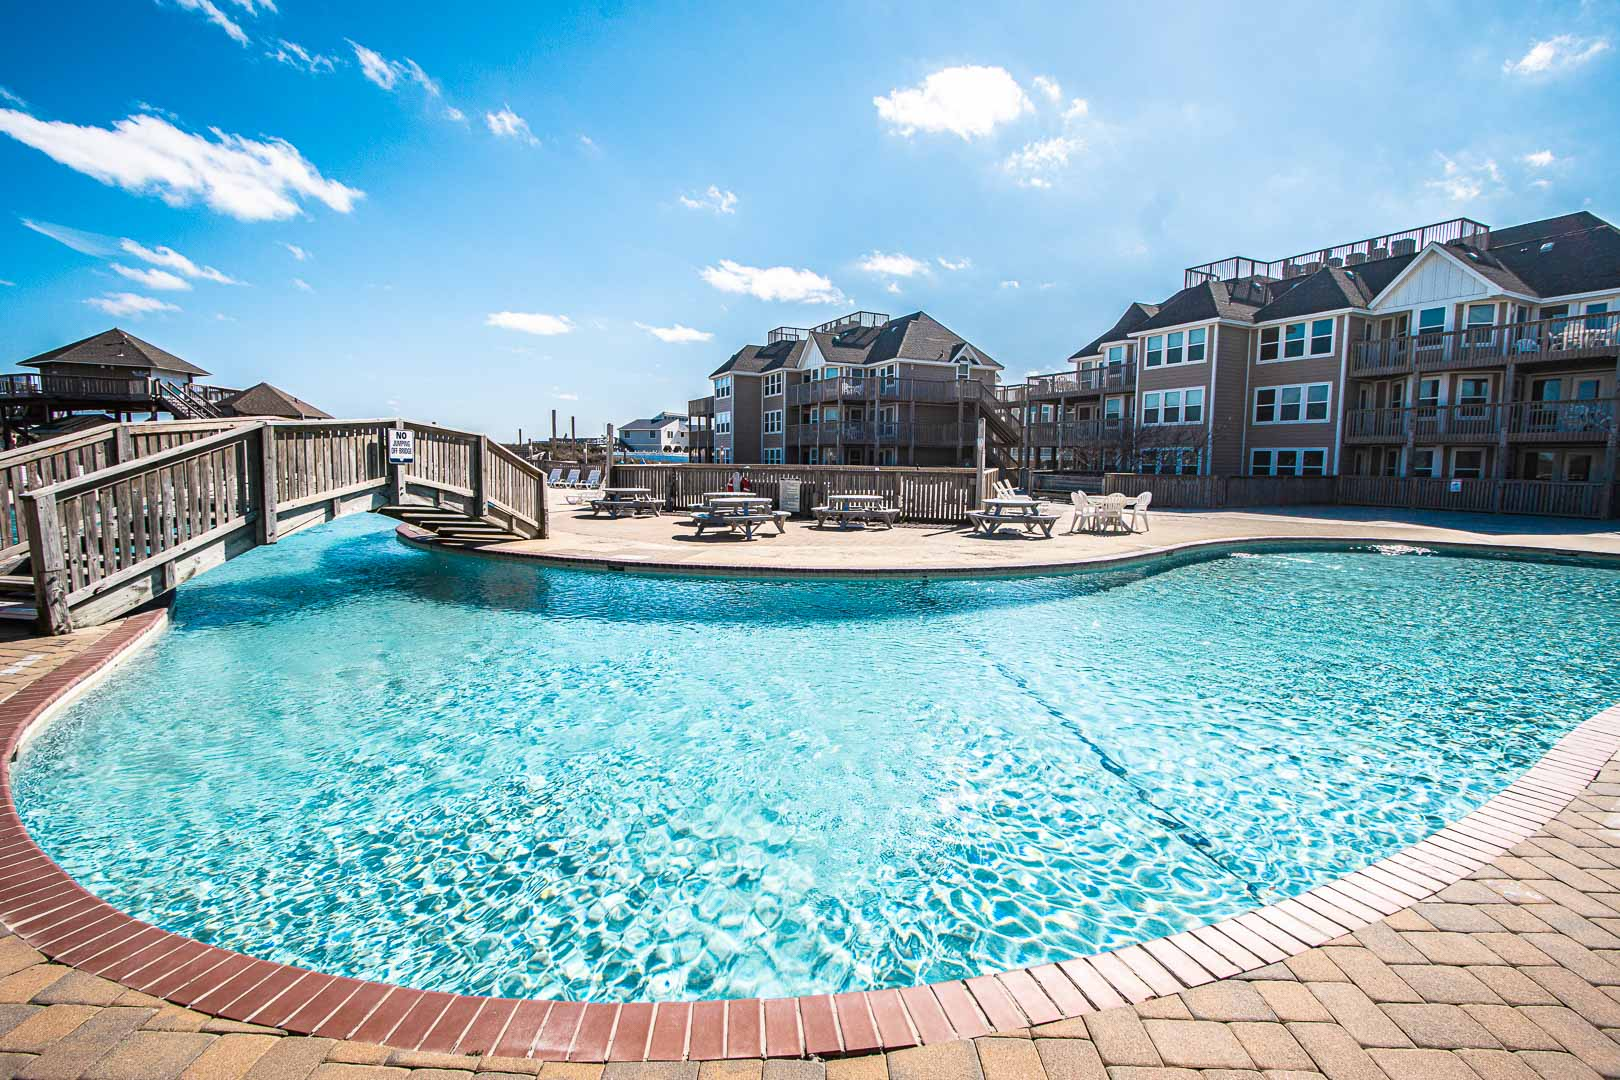 A crisp outside swimming pool at VRI's Barrier Island Station in North Carolina.